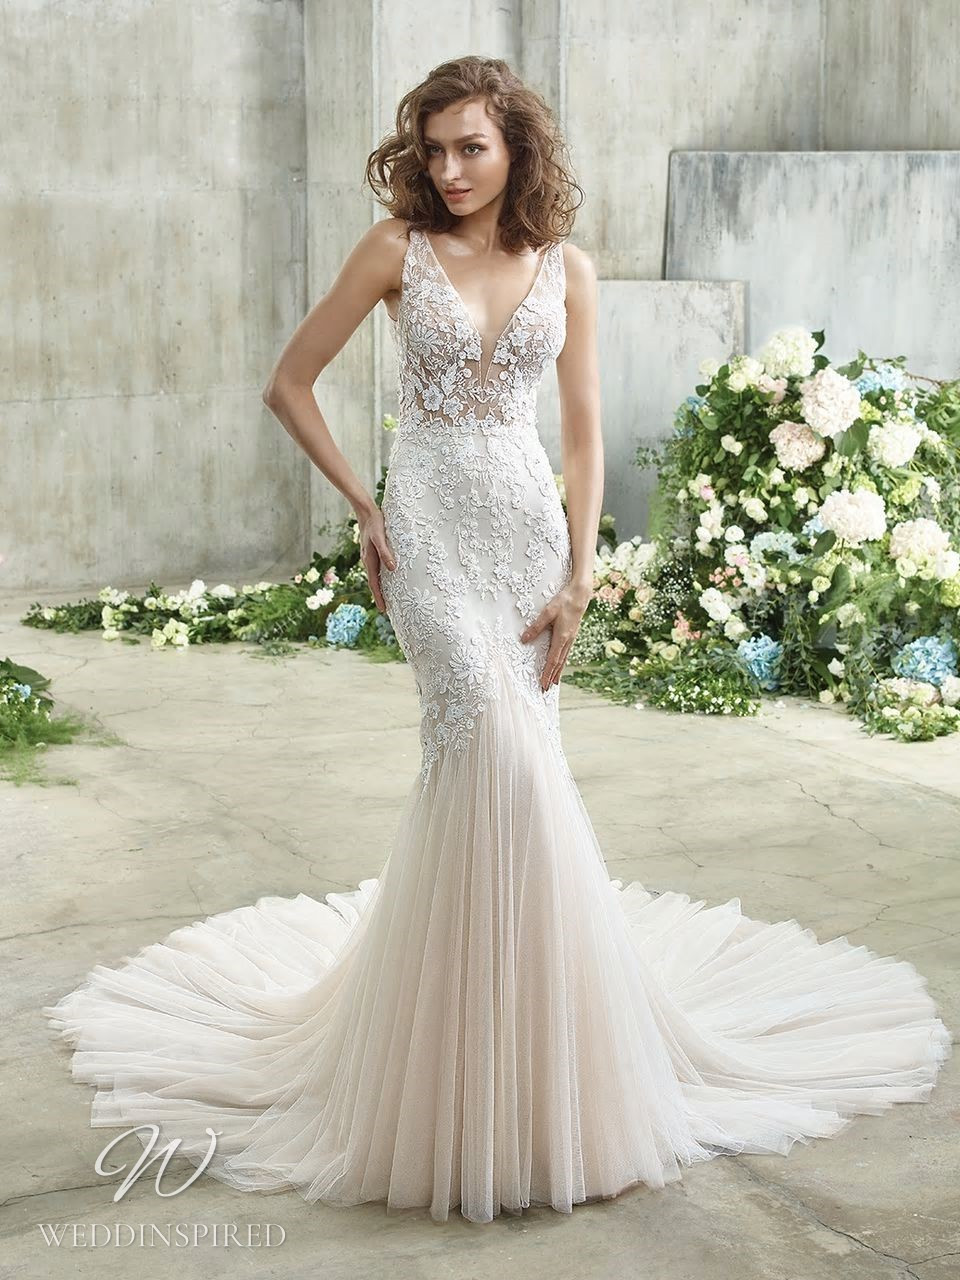 A Badgley Mischka lace mermaid wedding dress with a tulle skirt and a v neckline